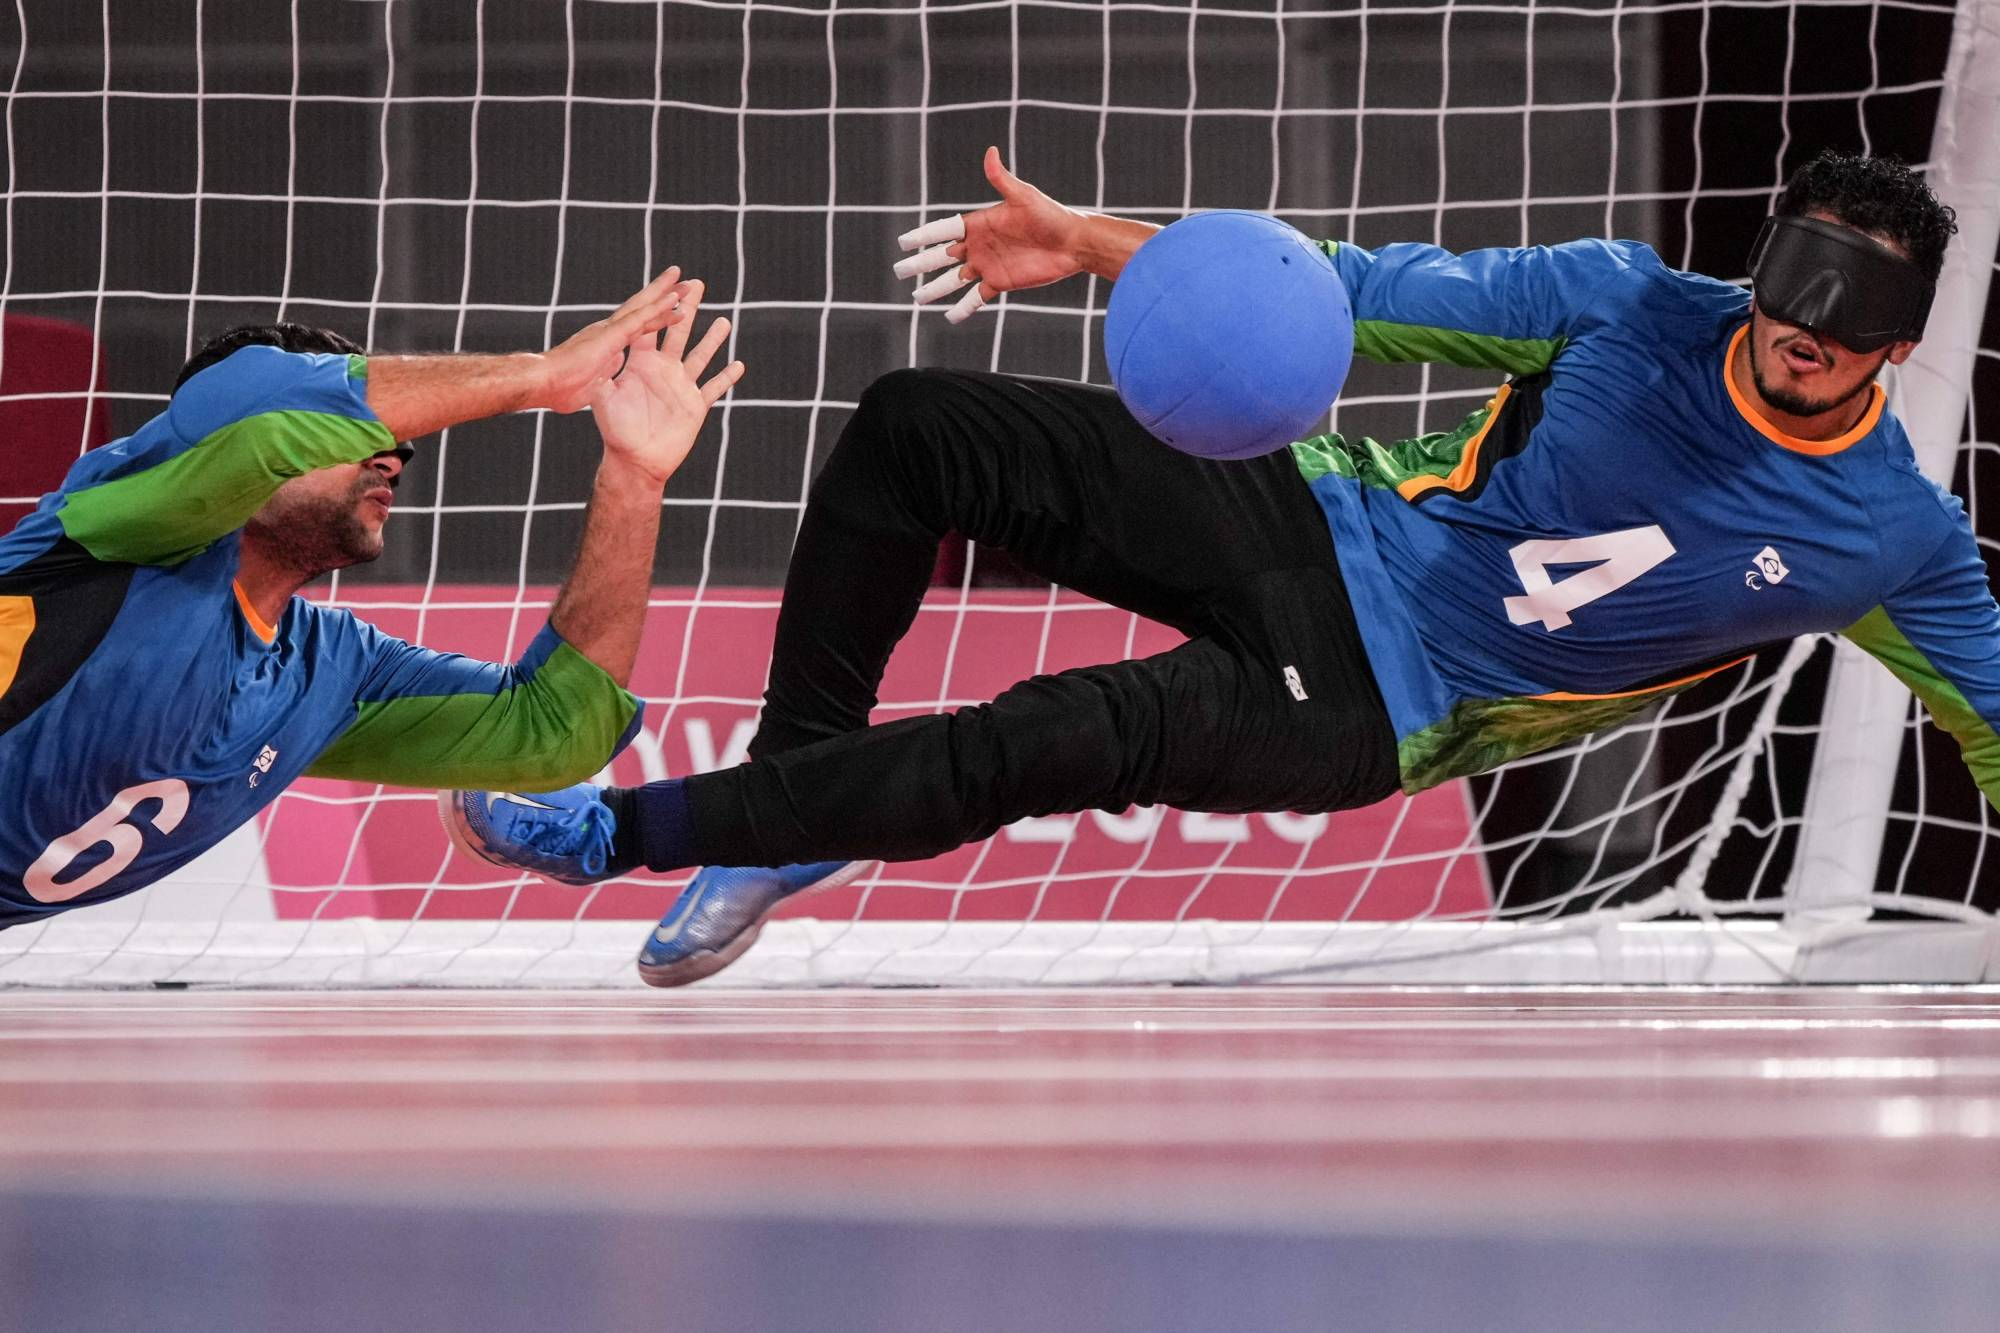 Brazil's Leomon Moreno (right) and Romario Marques defend a ball during the goalball preliminary match against Team USA   AFP-JIJI